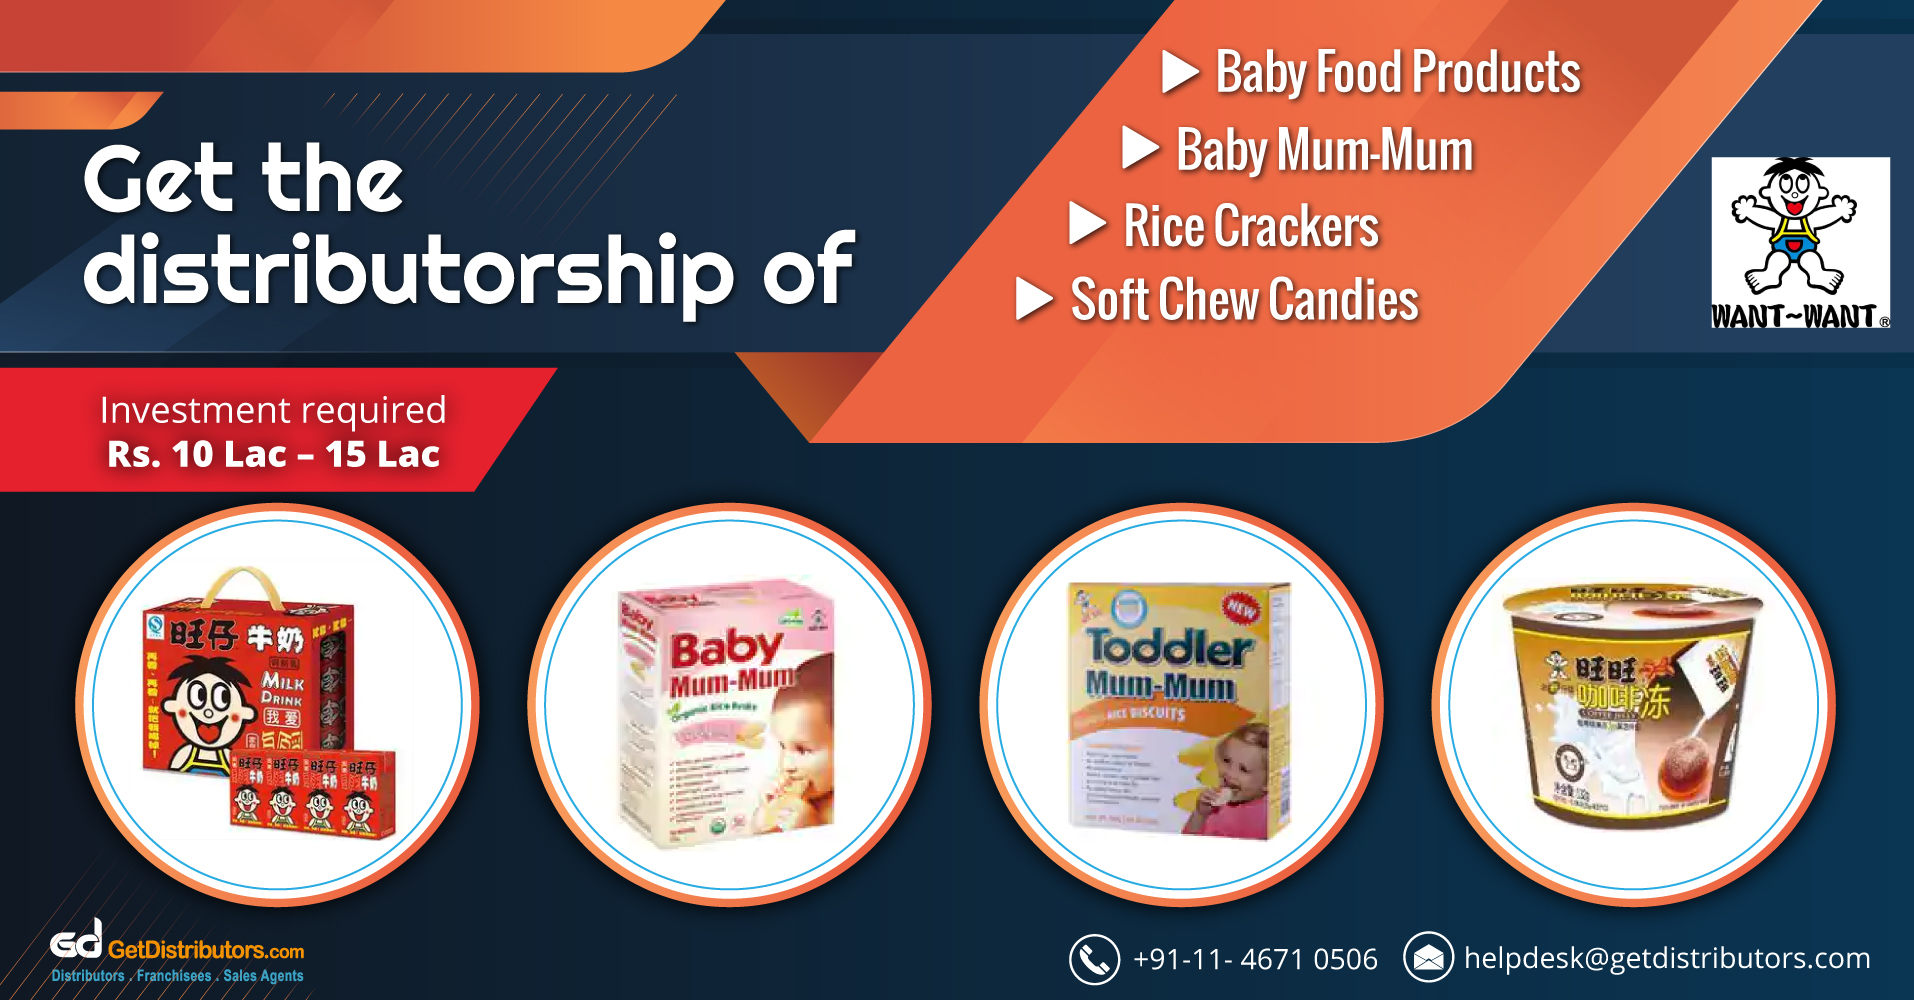 Winning Tactics To Get Baby Food Products Distributorship